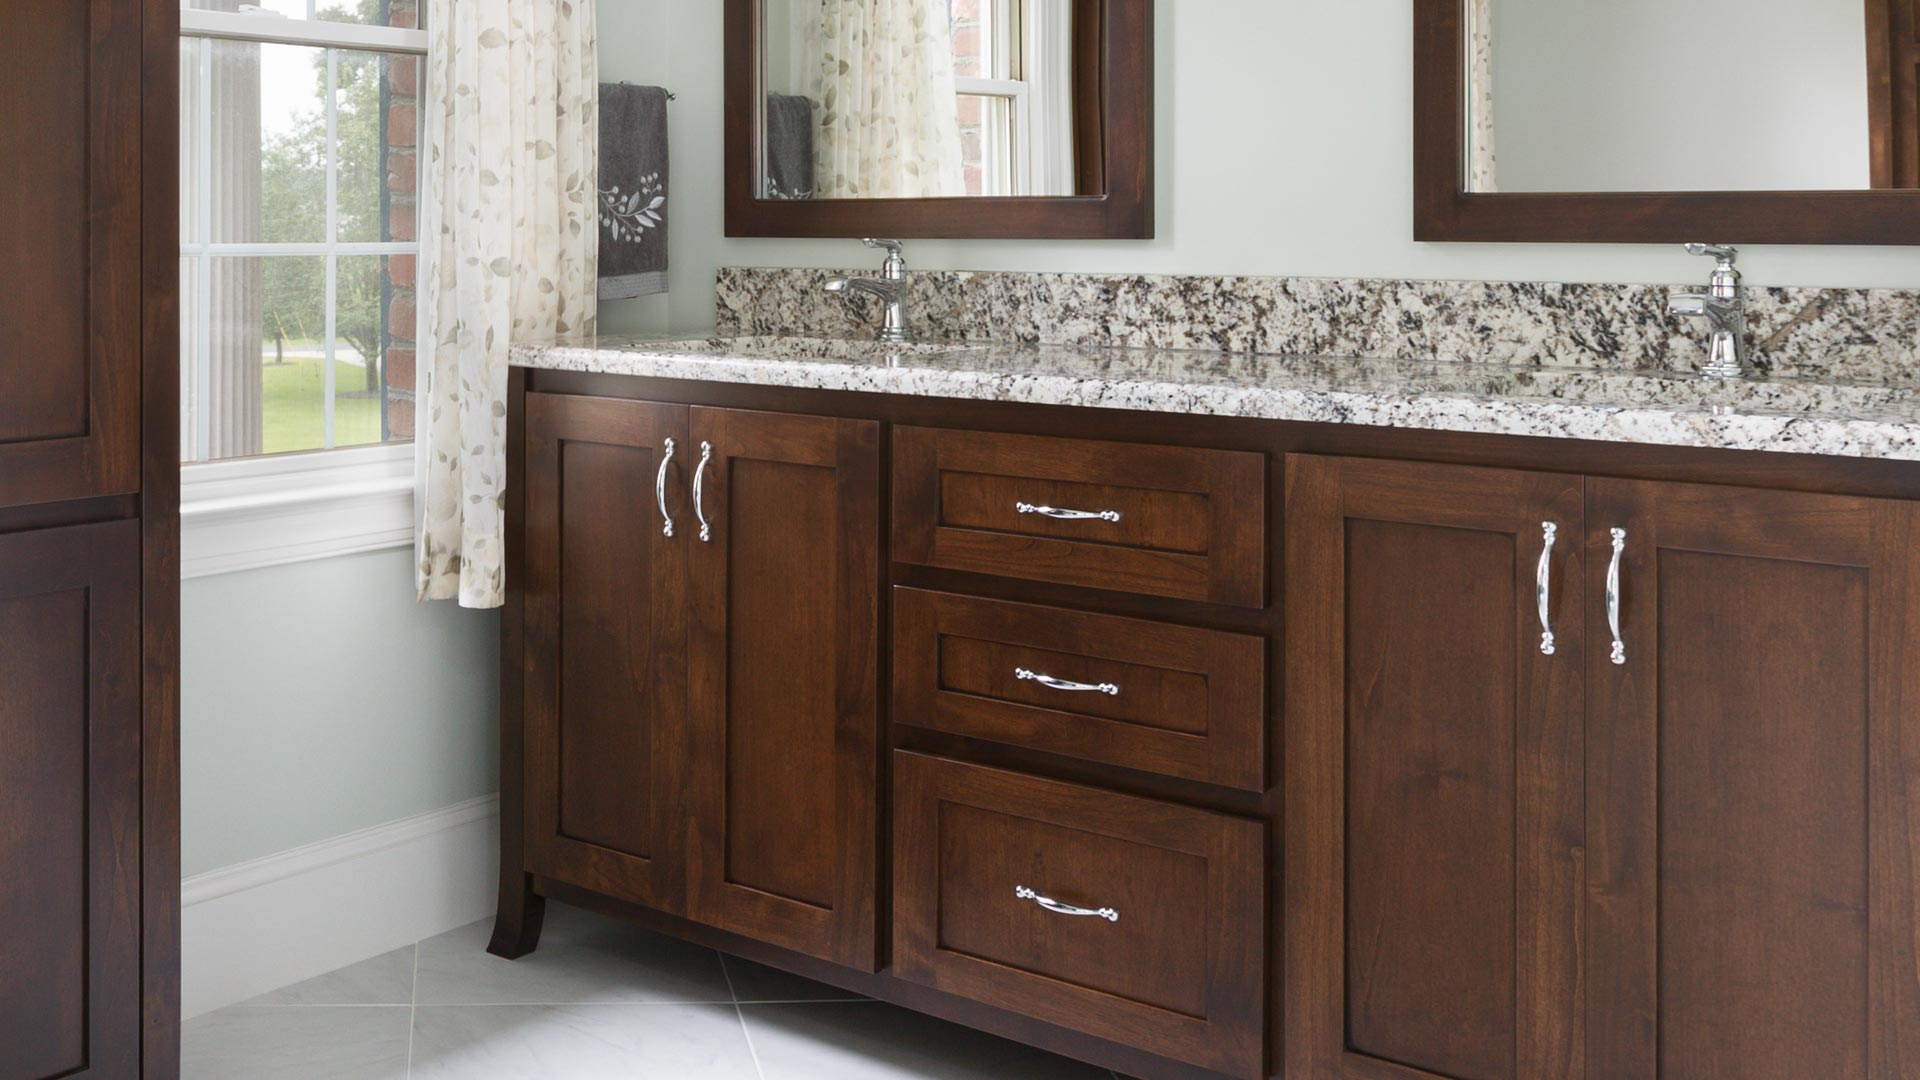 bathroom remodeling wilmington nc. Bathroom Remodeling Gallery Wilmington Nc